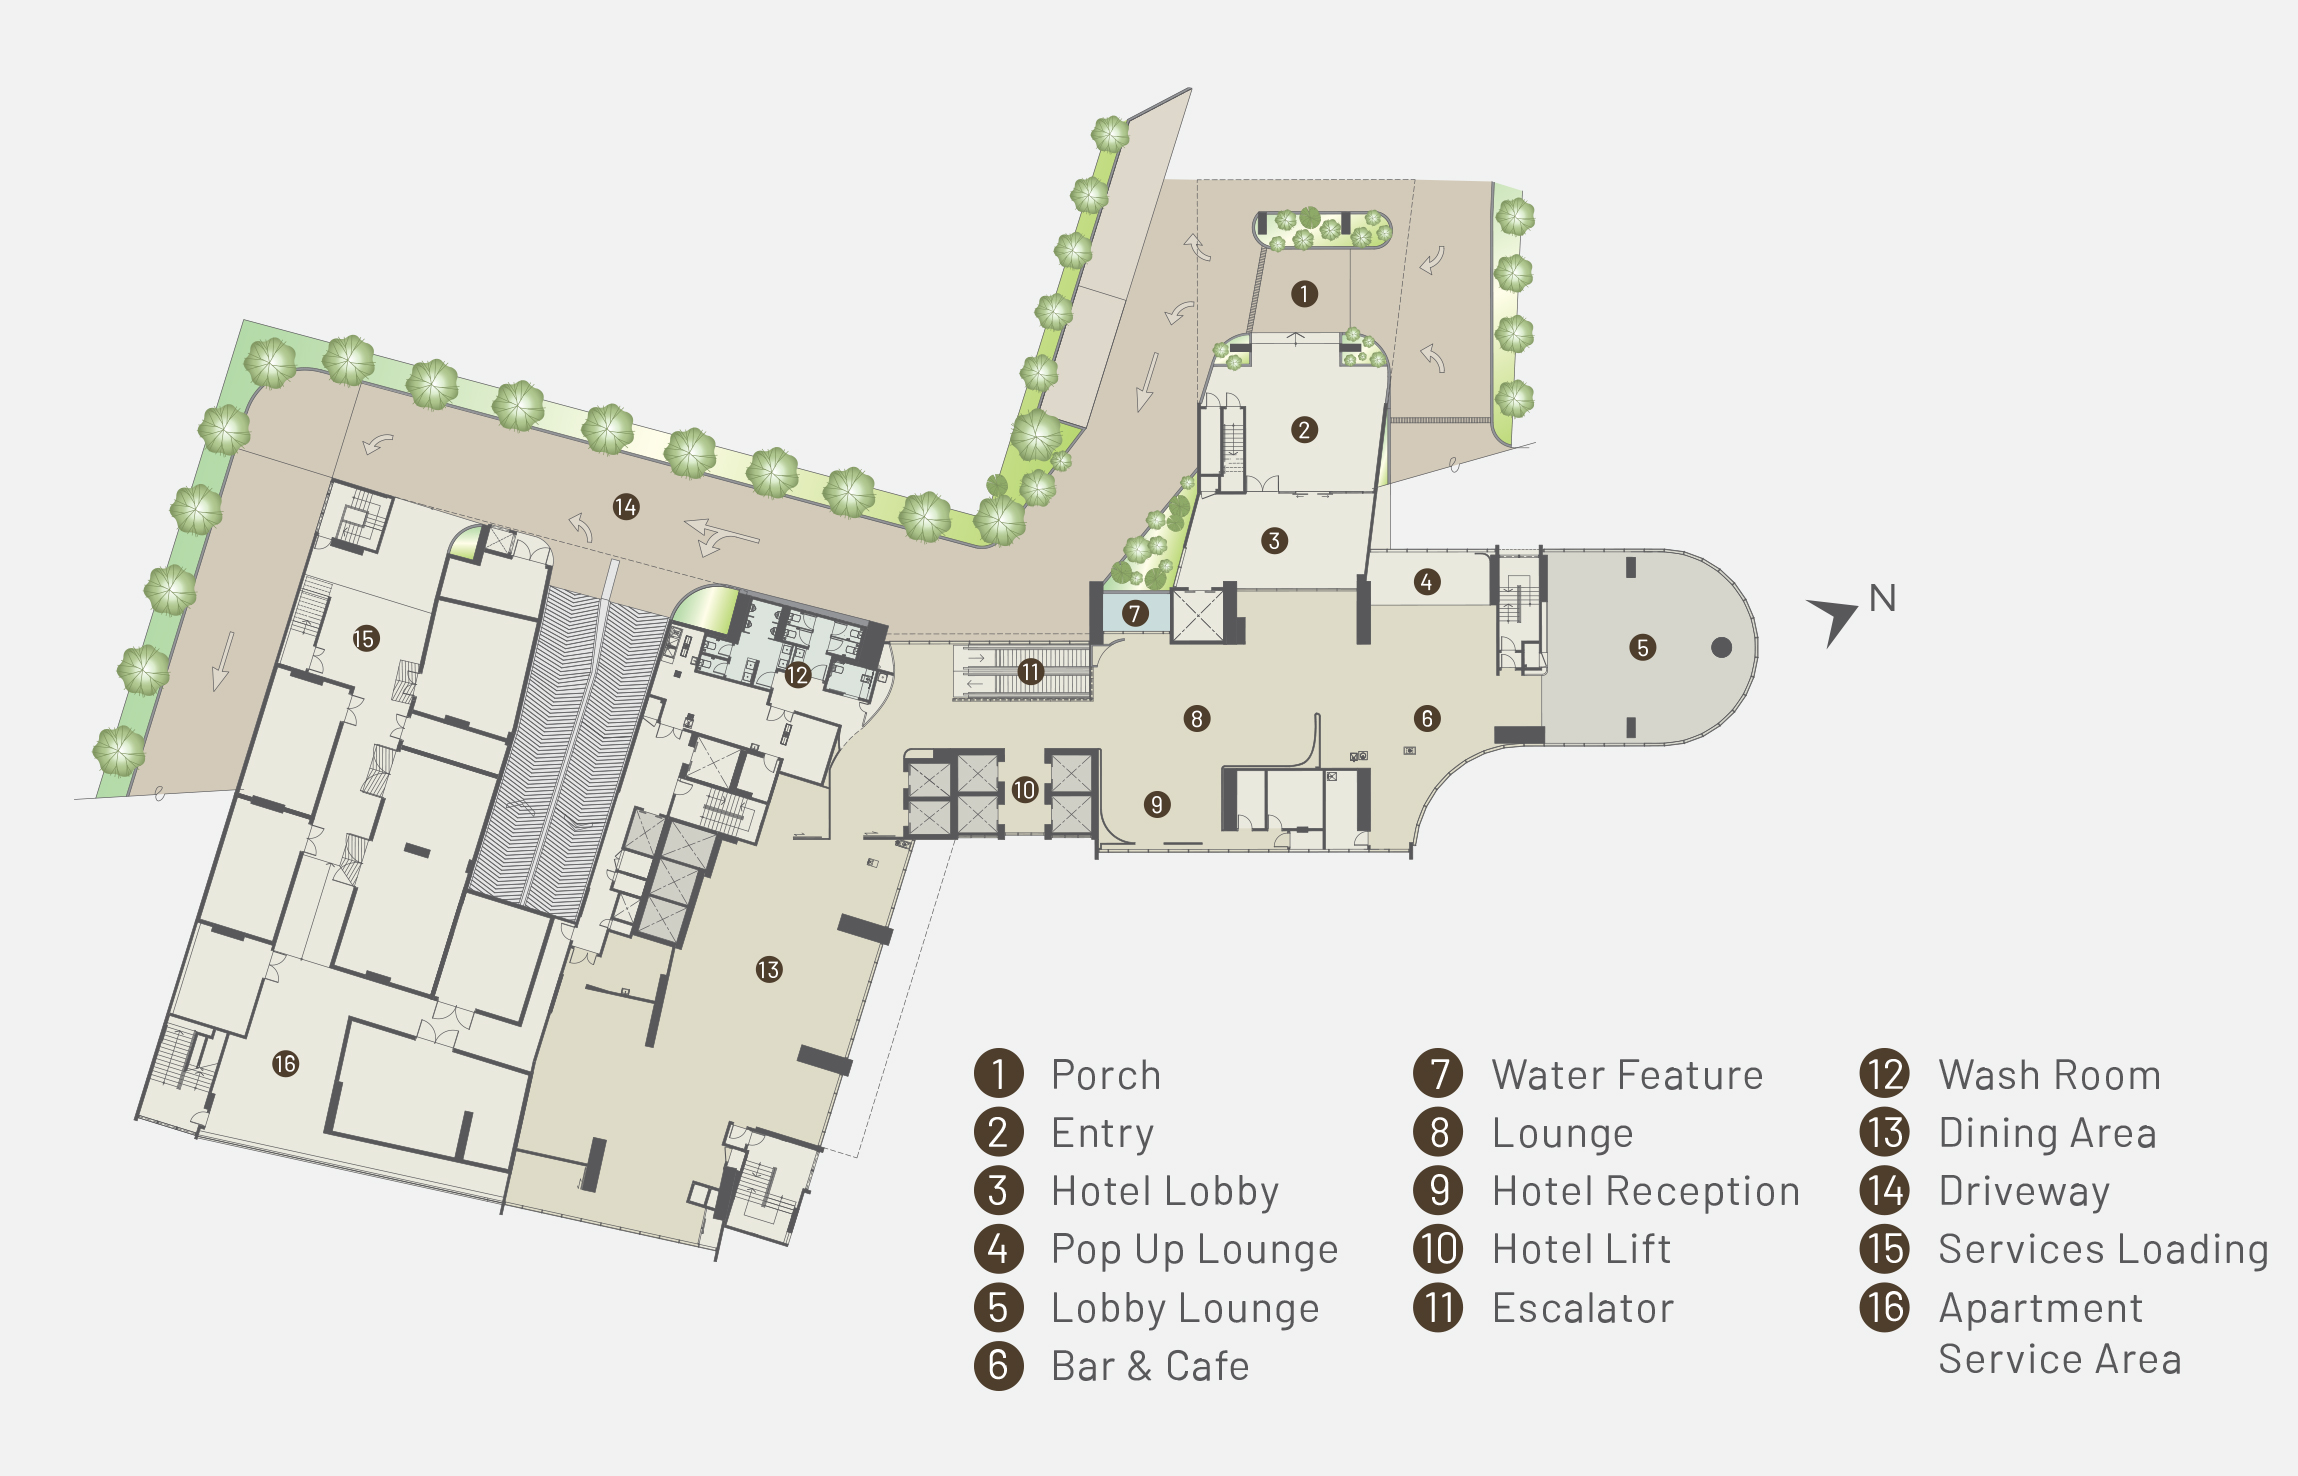 Level 1 plan of Alfa Bangsar showing facilities such as the porch, entry, hotel lobby, pop up lounge, lobby lounge, bar and cafe, water feature, lounge, hotel reception, hotel lift, escalator, wash room, dining area, driveway, services loading, and apartment service area.